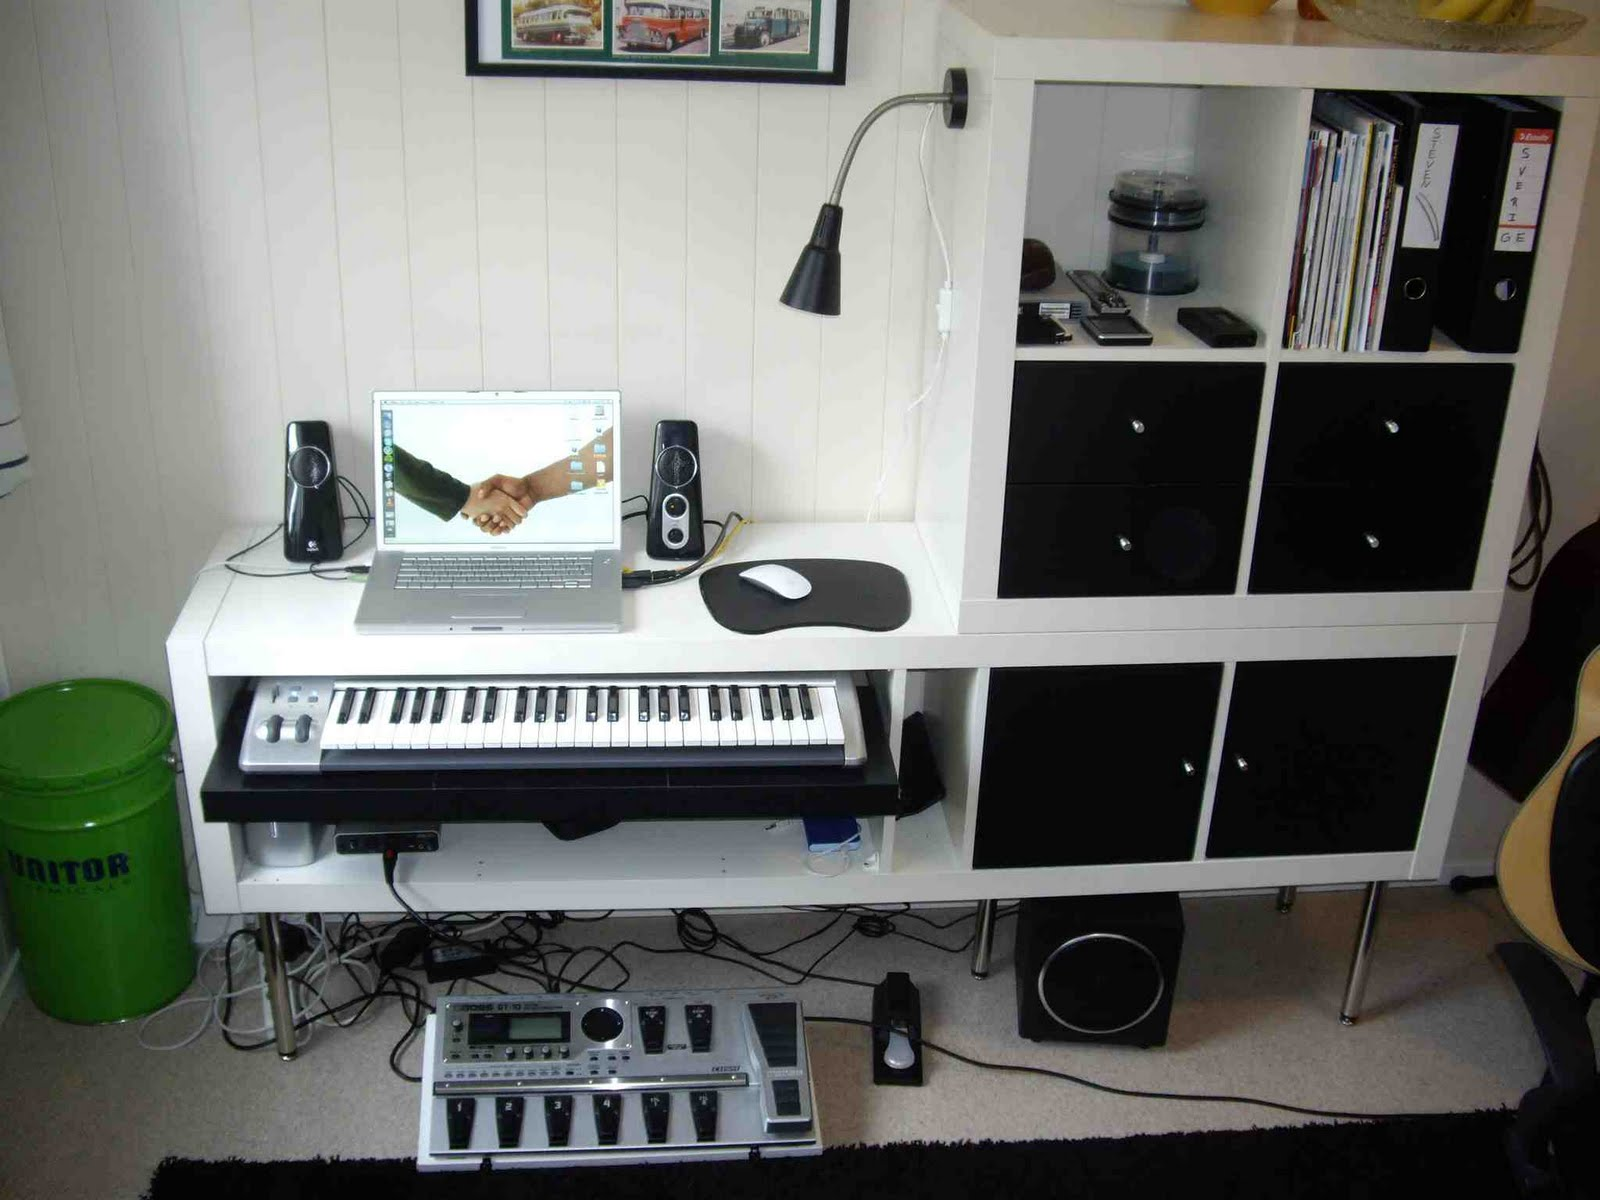 ikea for music ikea hackers ikea hackers. Black Bedroom Furniture Sets. Home Design Ideas